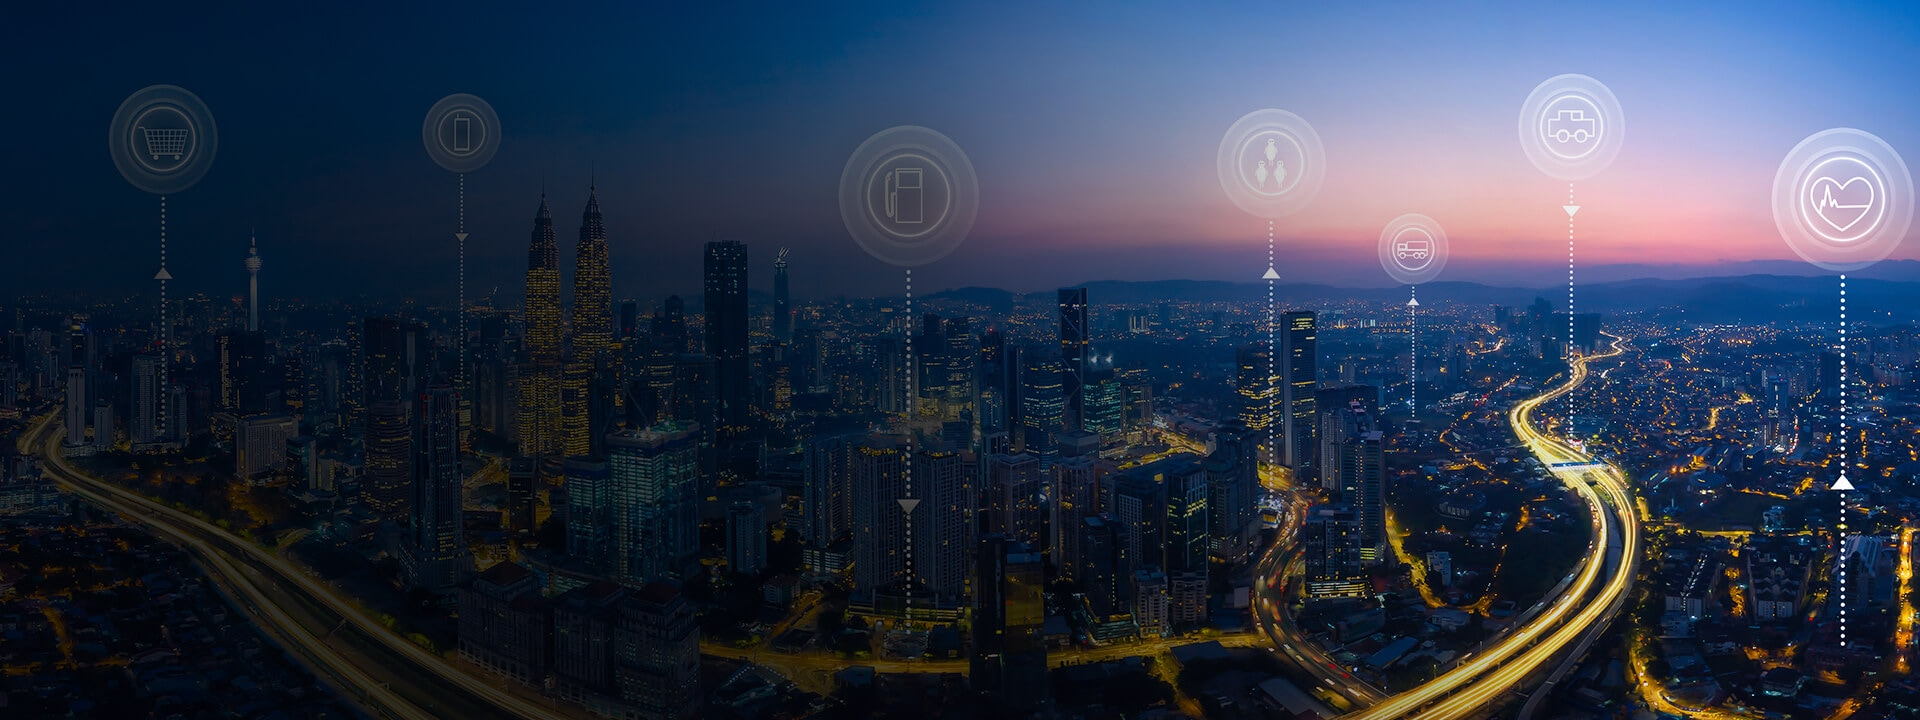 Smarter is powering the 5G data revolution